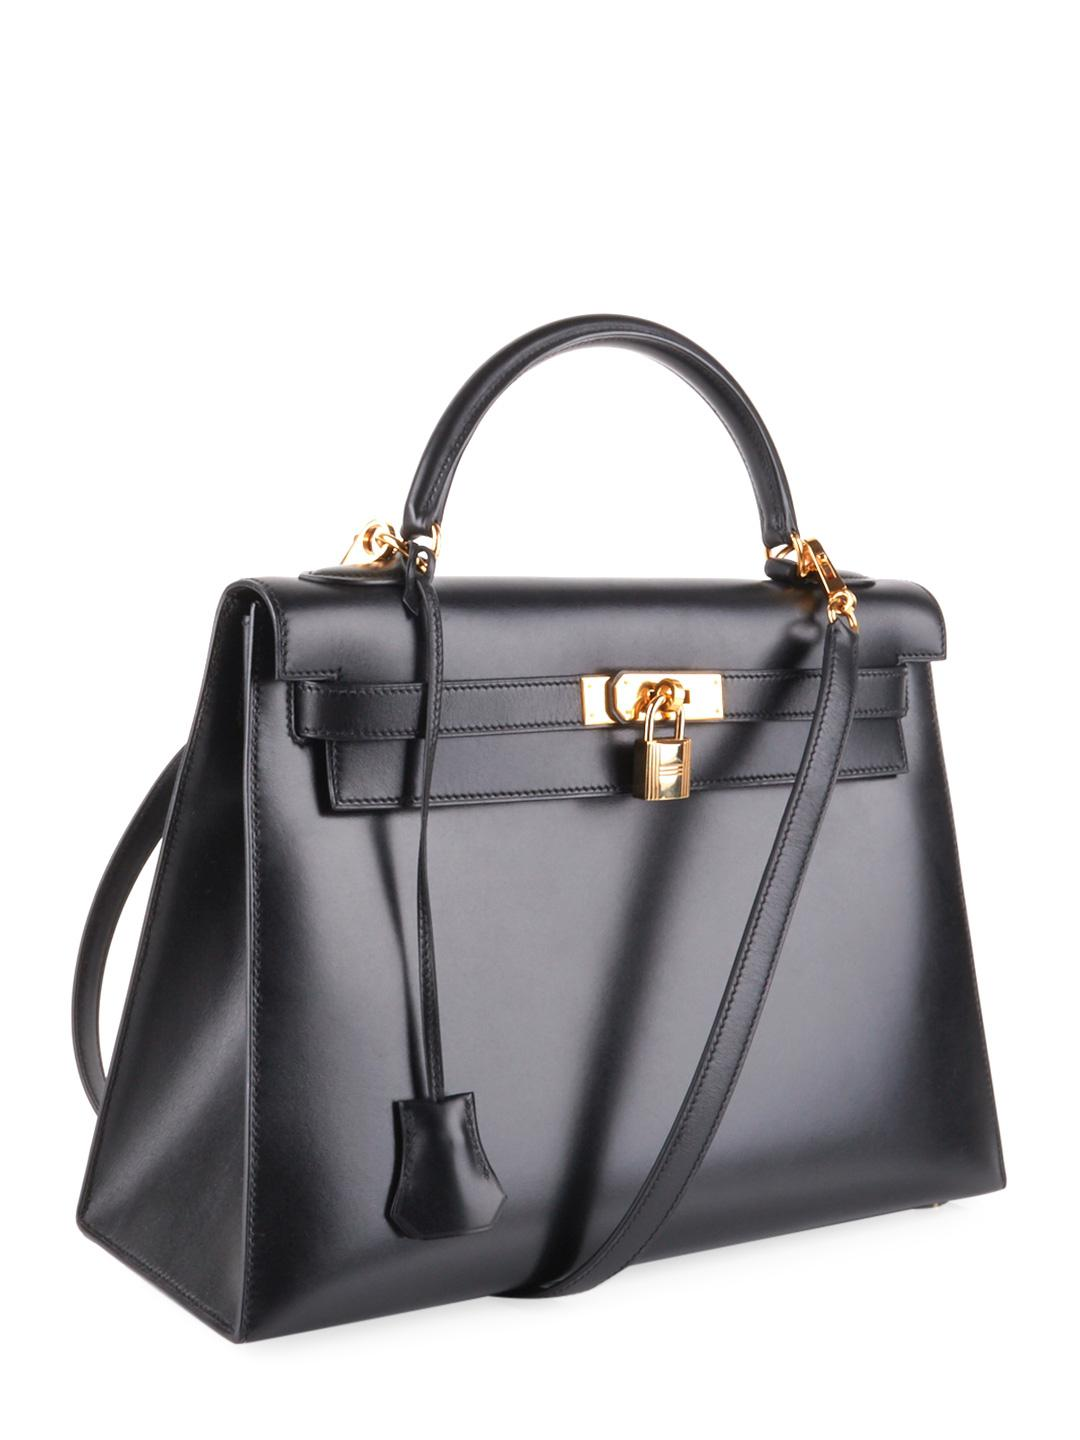 d9665dbc722d Hermès Vintage Black Box Kelly Sellier 32 in Black - Lyst